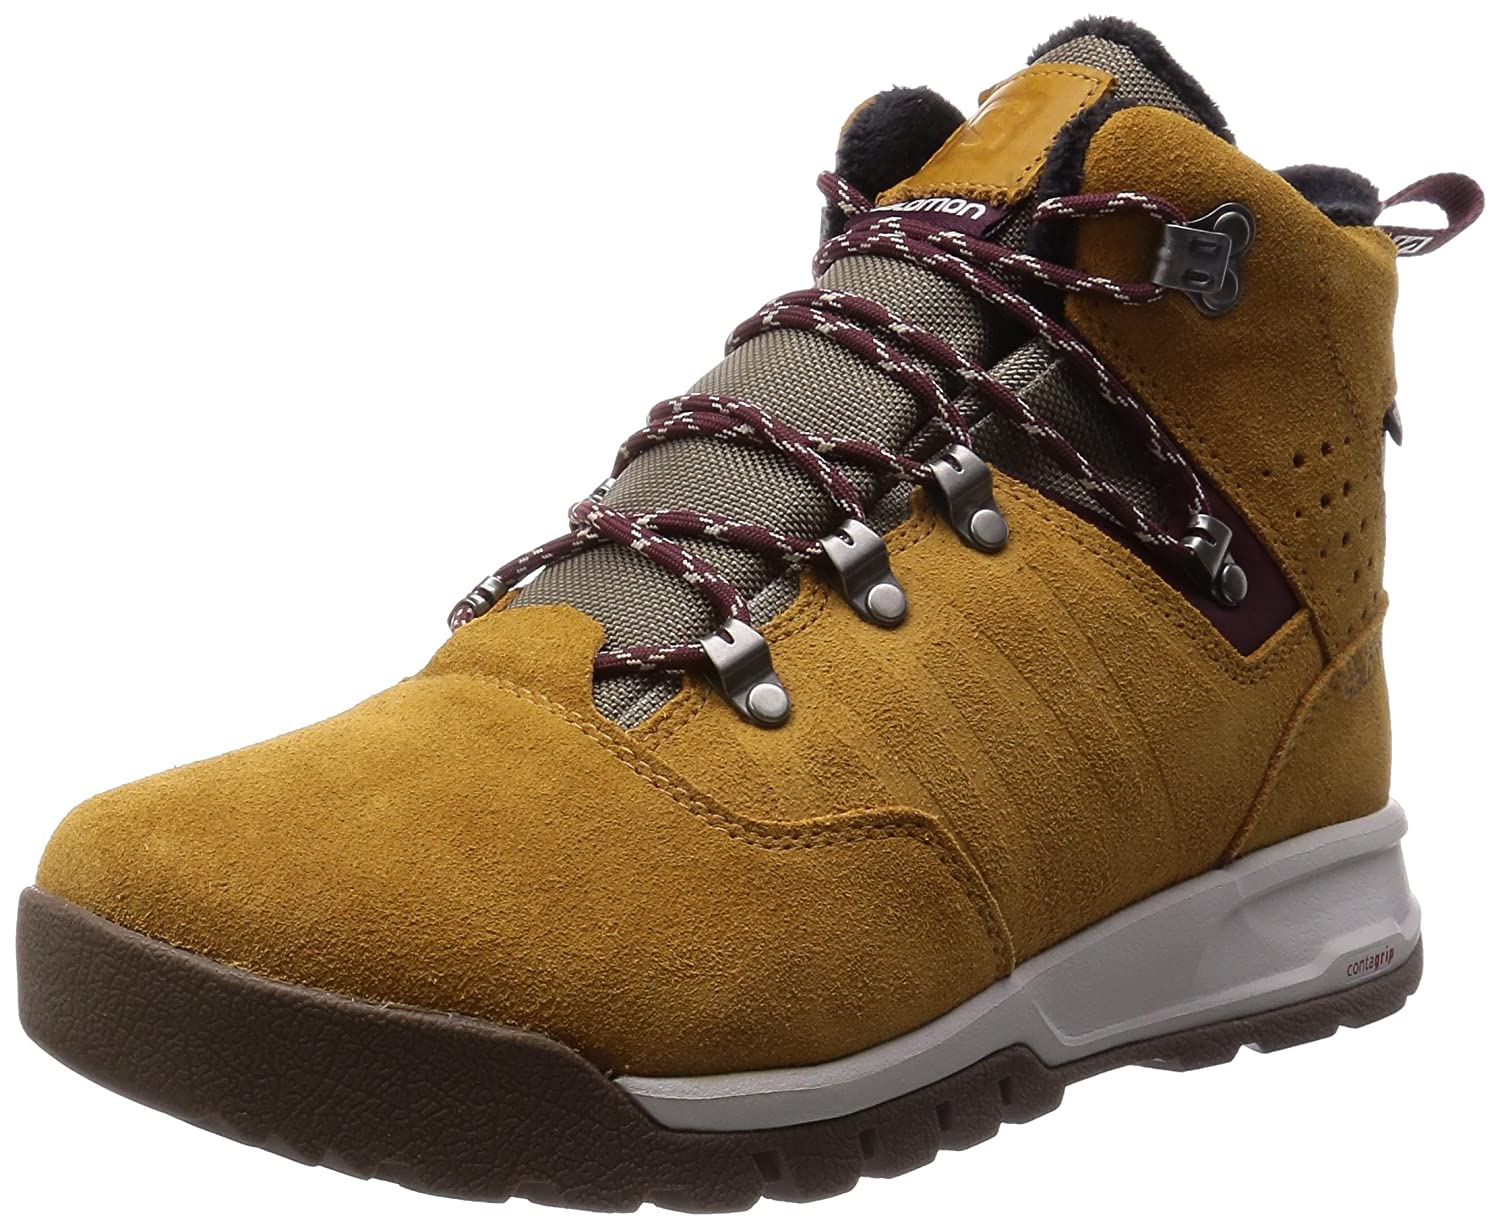 Salomon Men's Utility TS CSWP Winter Wear Hiking Boot